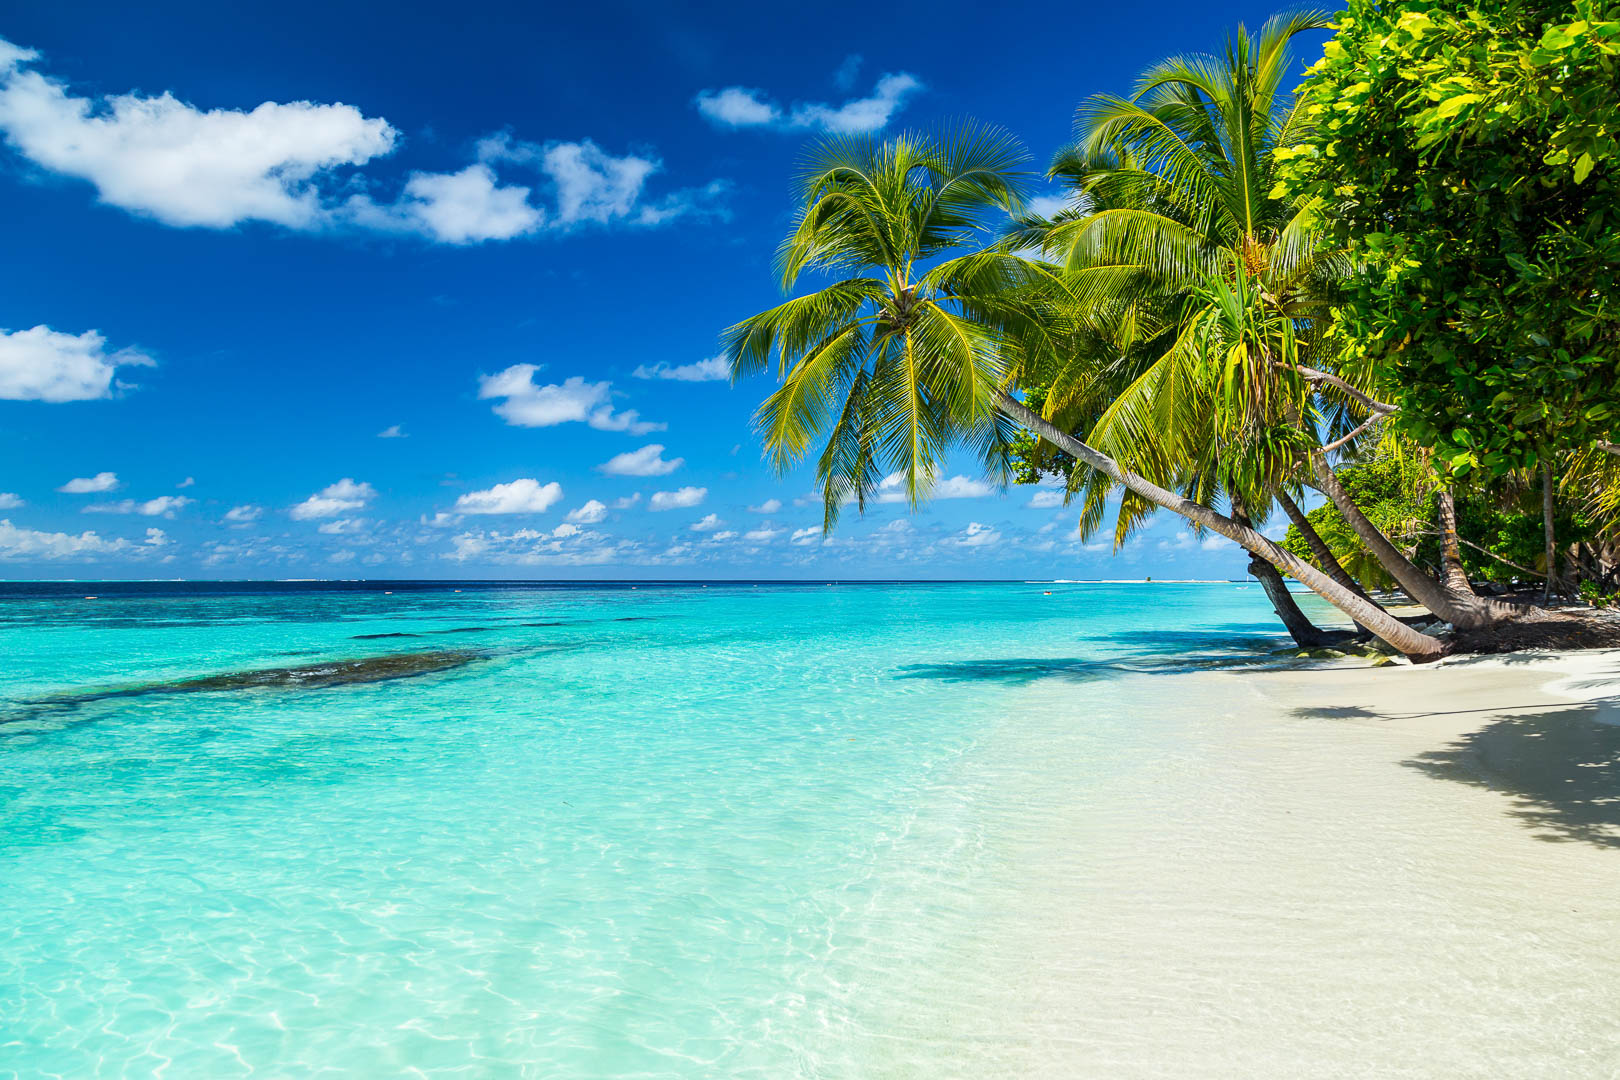 coco palms on tropical paradise beach with turquoise blue water